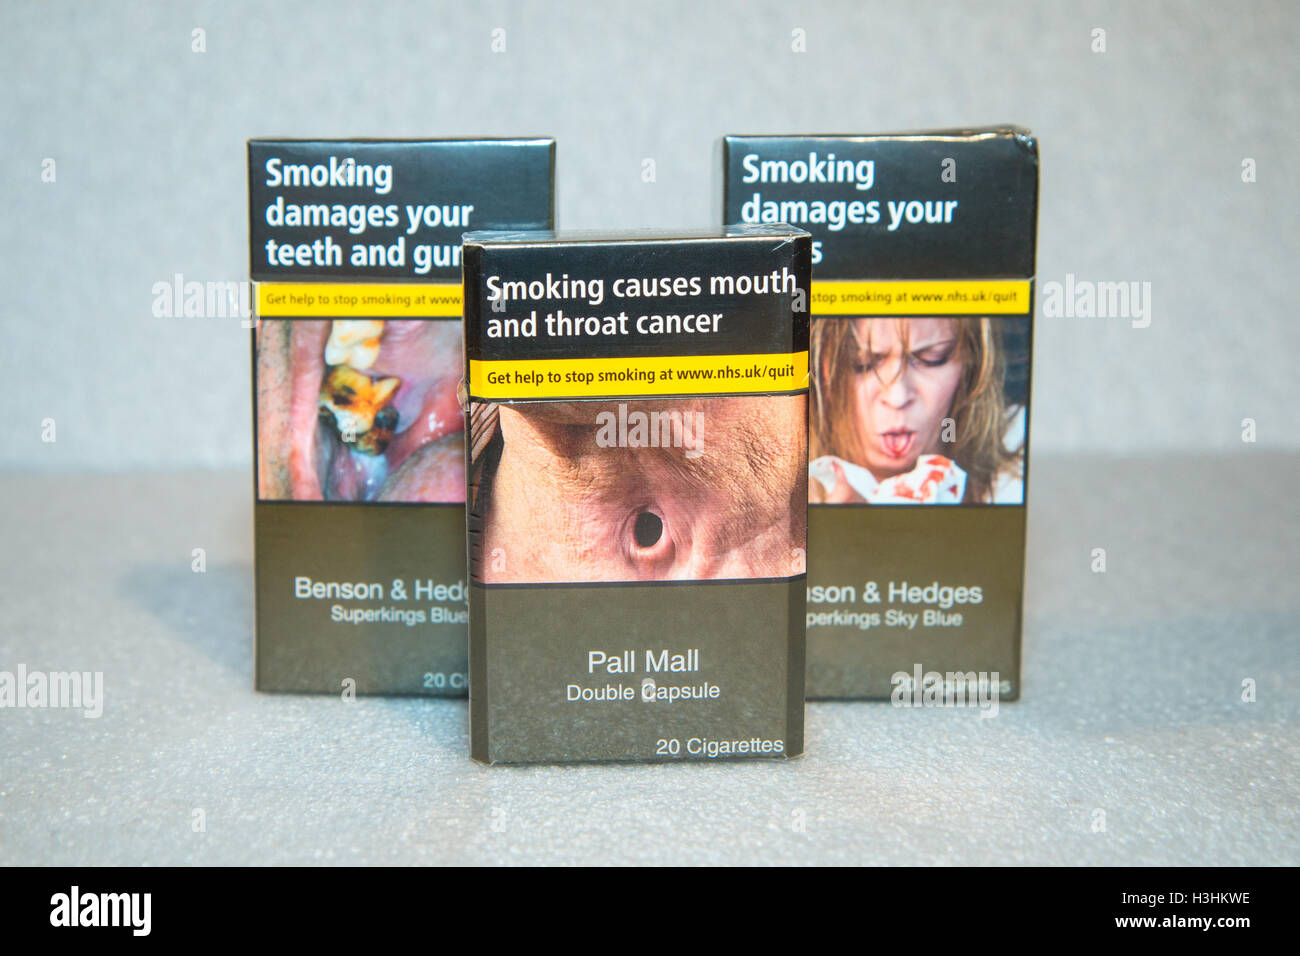 Buy Karelia cigarettes UK online